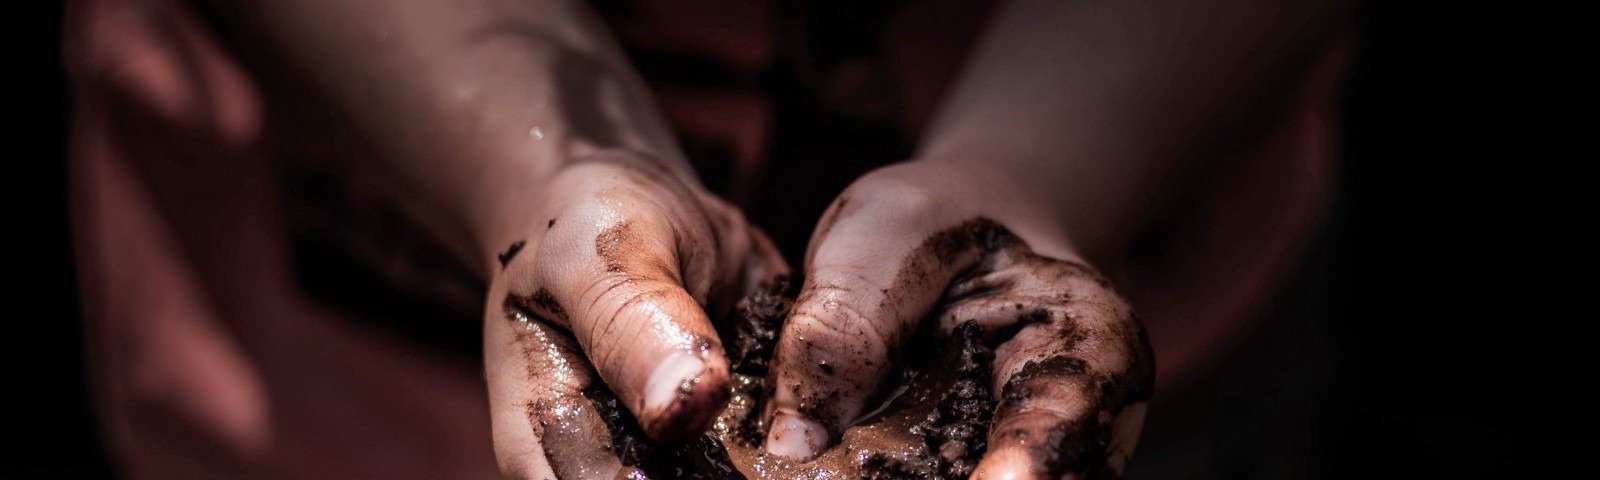 close up of child's hand holding mud and making heart shape